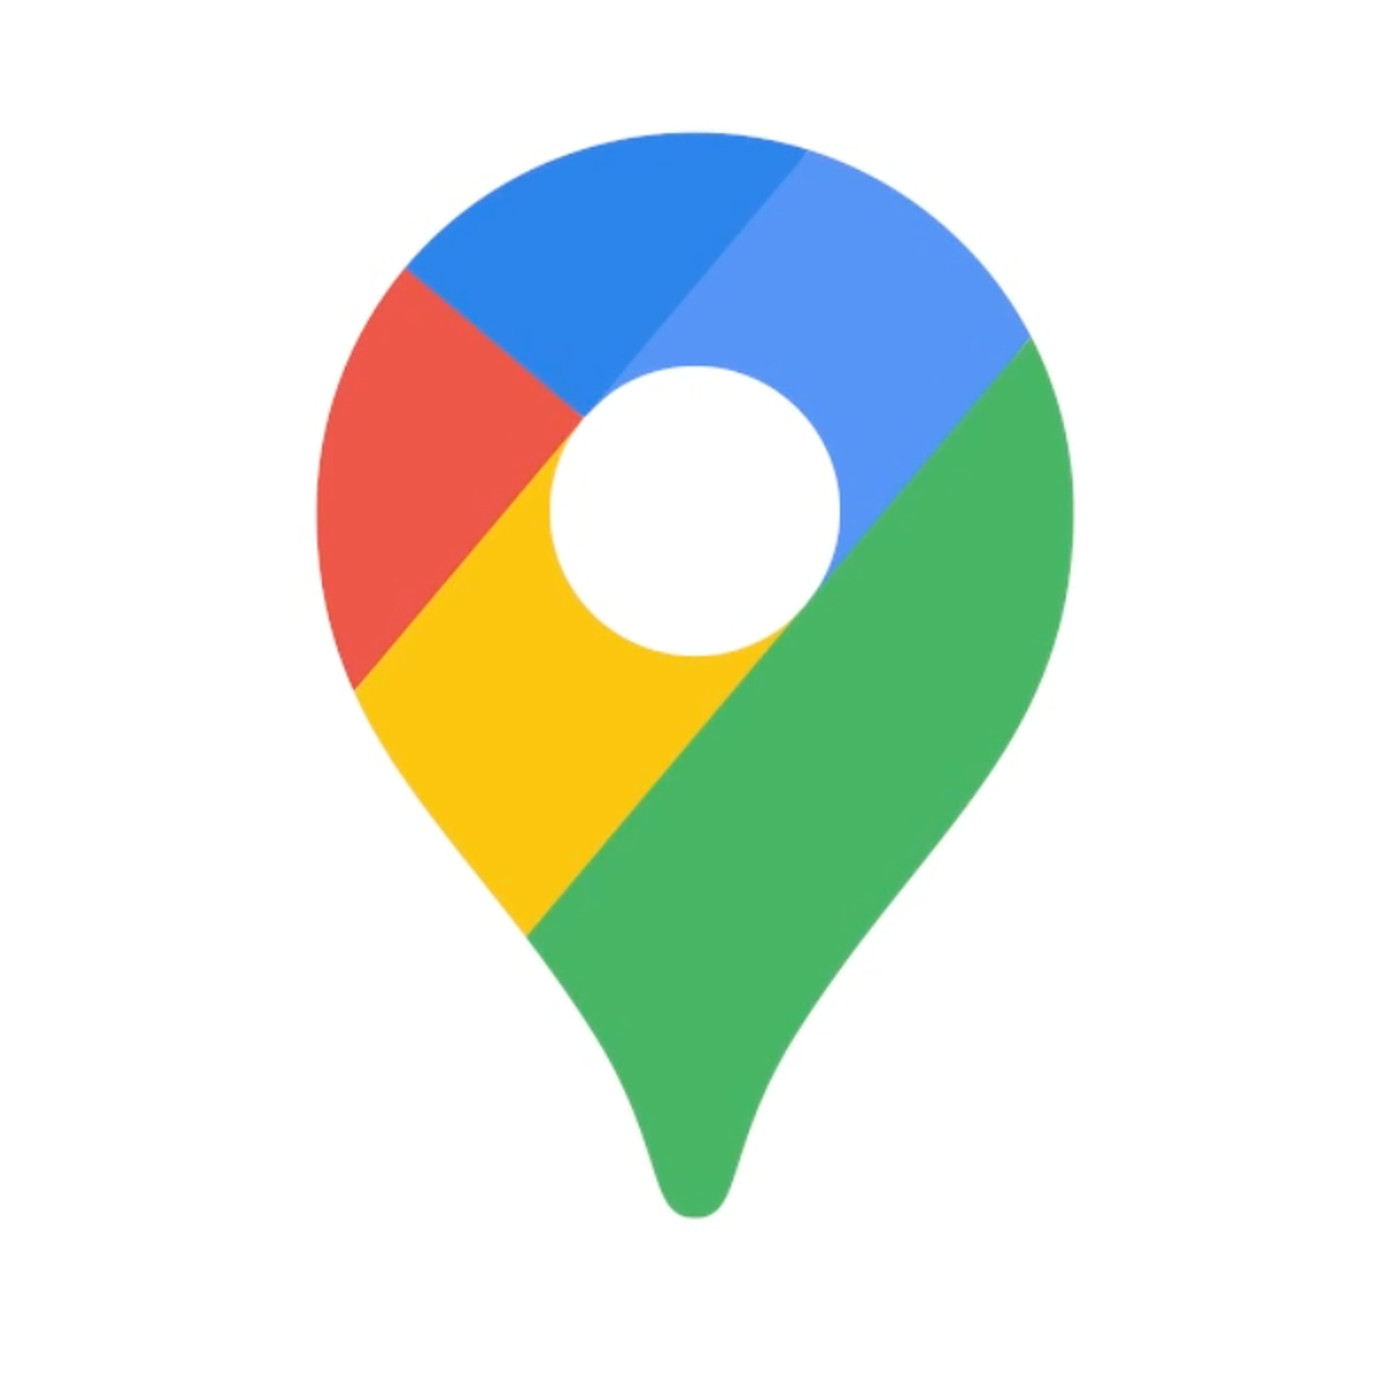 Google Maps Gets A New Icon And More Tabs To Celebrate 15th Anniversary The Verge